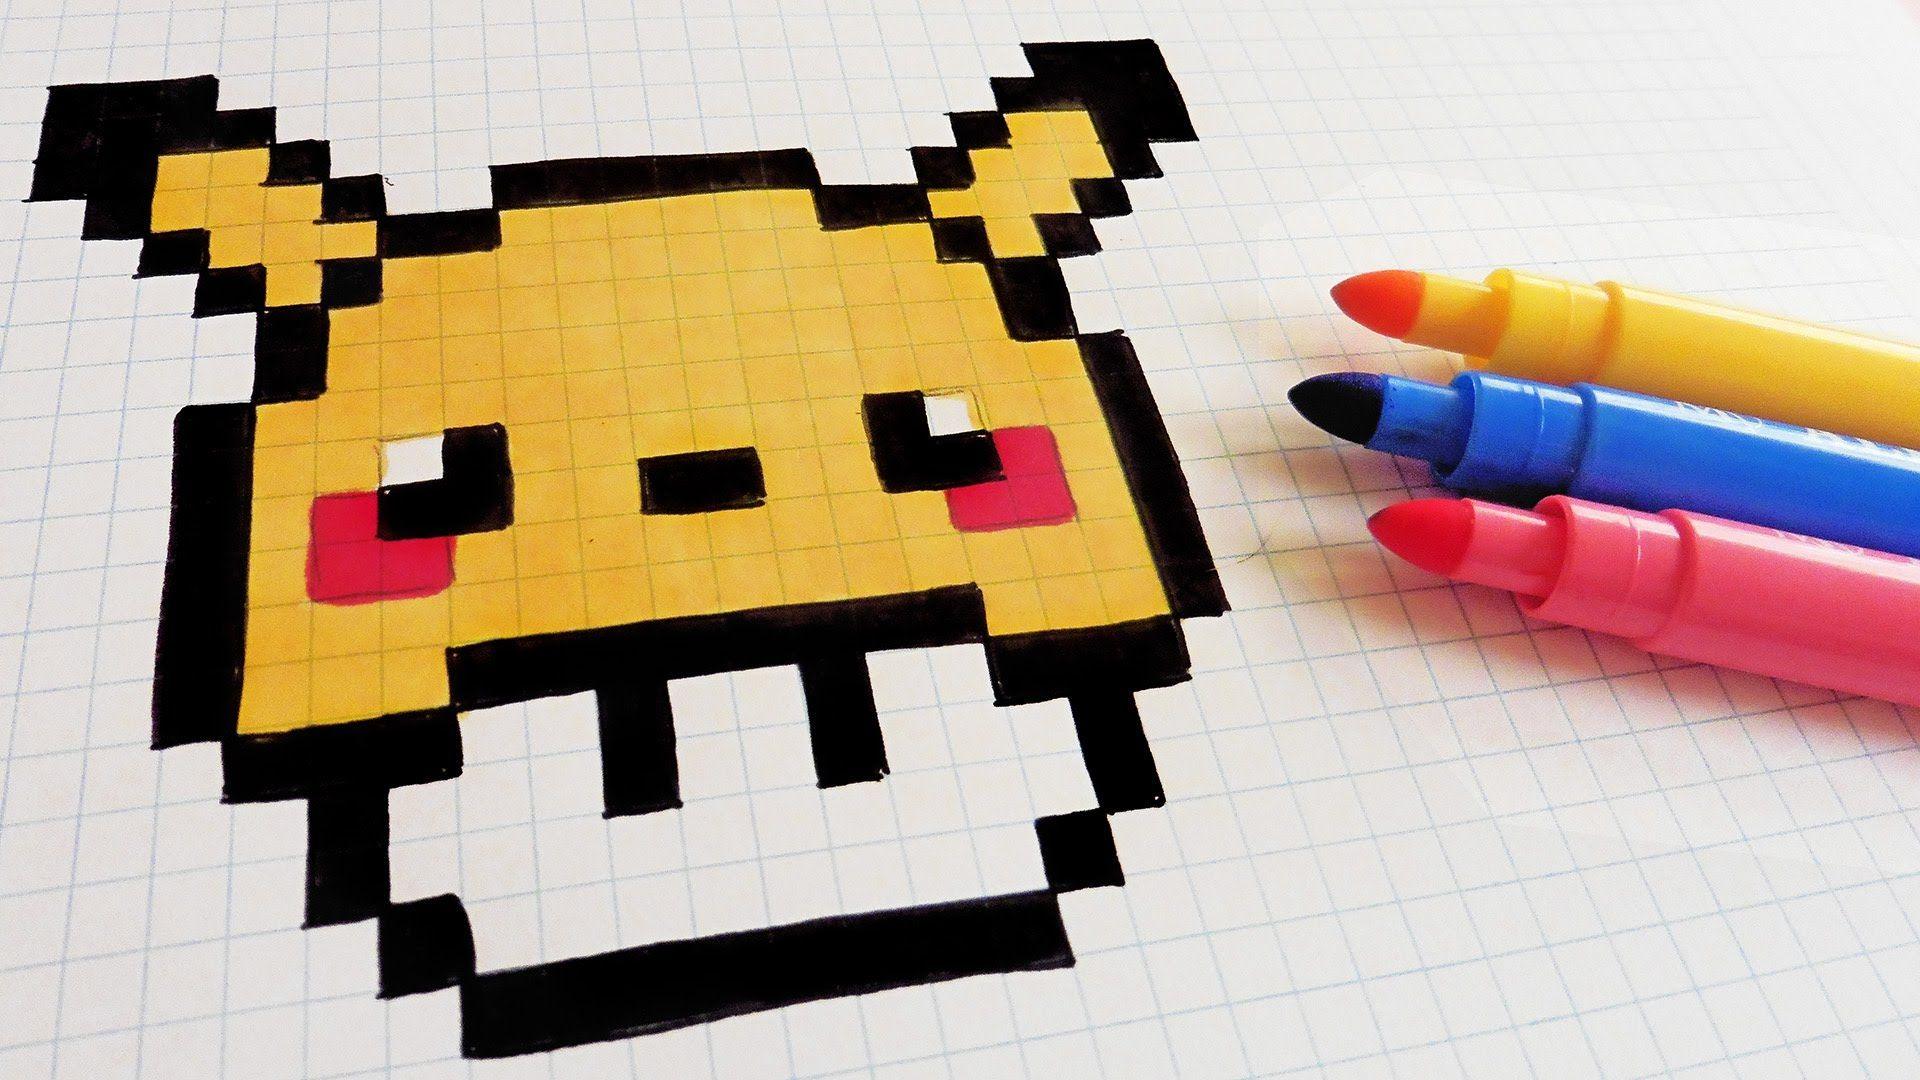 Handmade Pixel Art How To Draw Pikachu Mushroom Pixelart Pixel Art